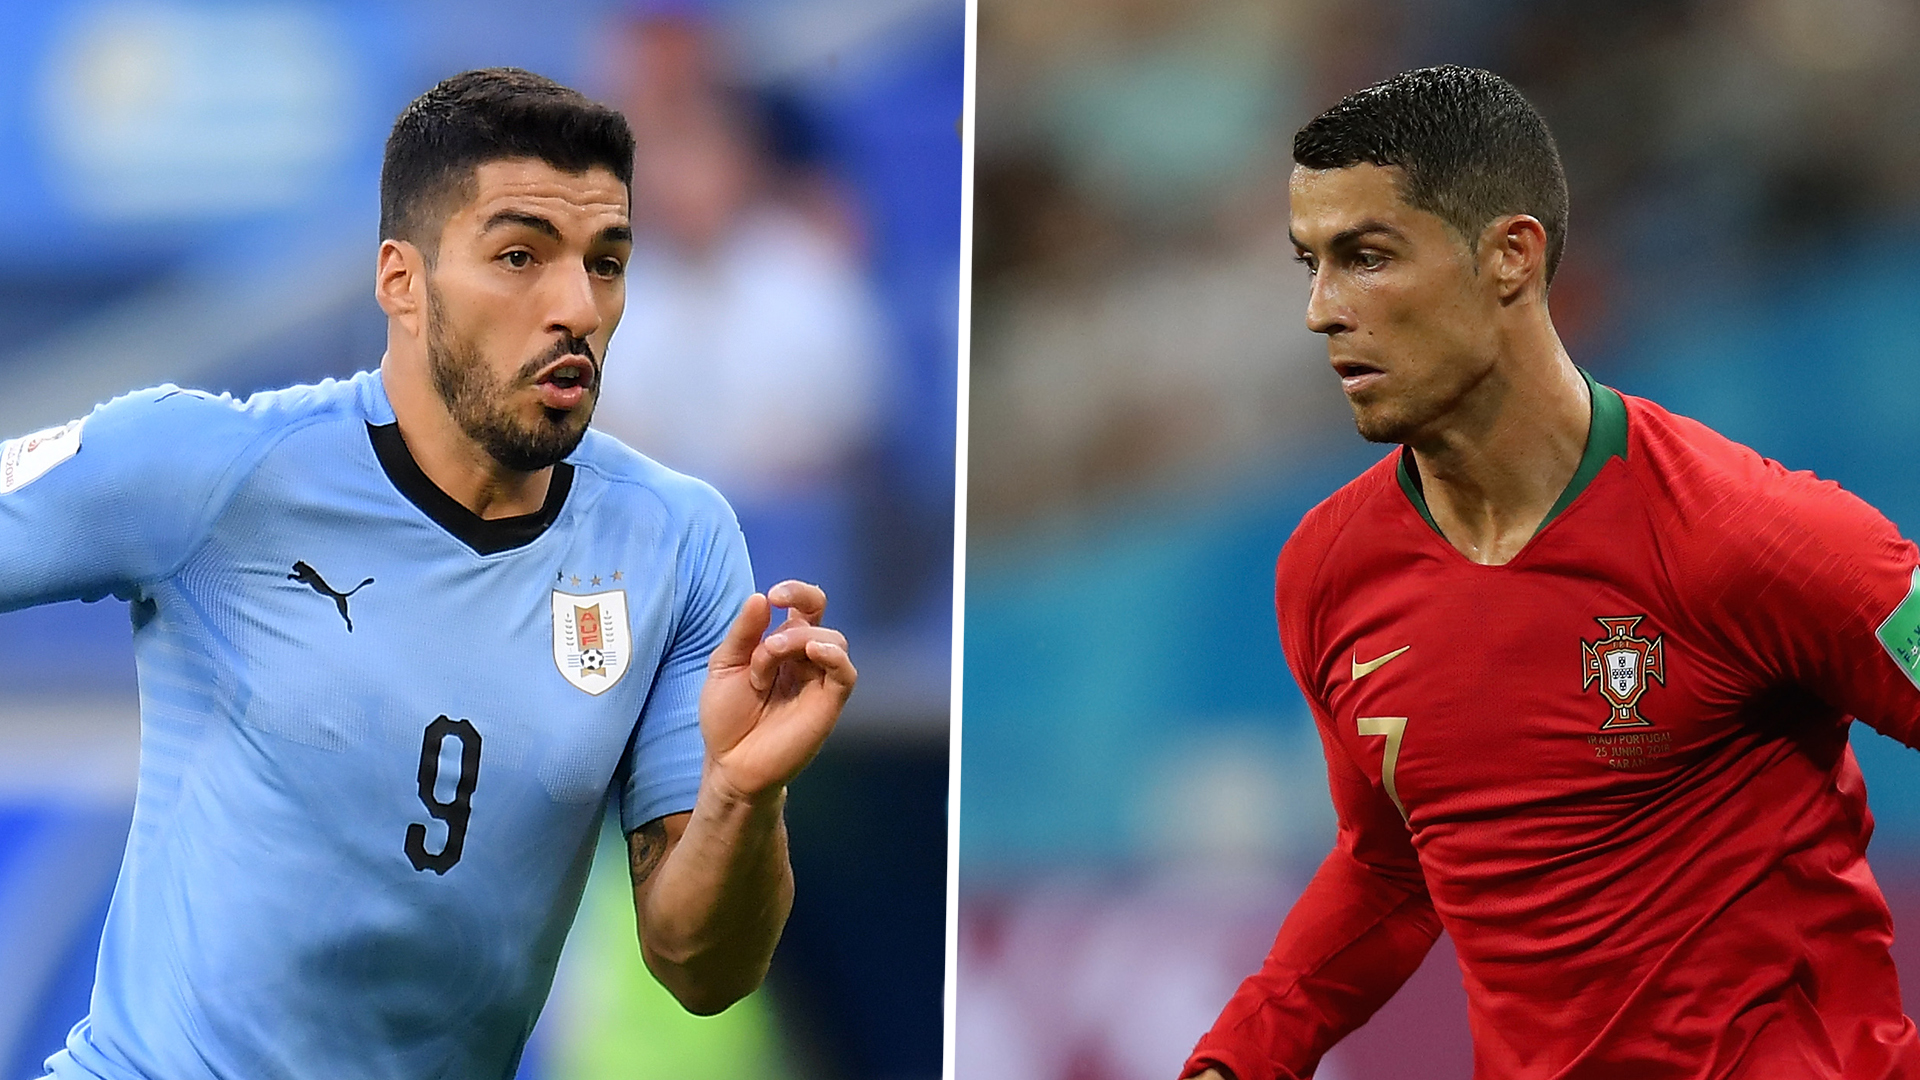 Luis Suarez back to his tenacious best as Uruguay beat Portugal